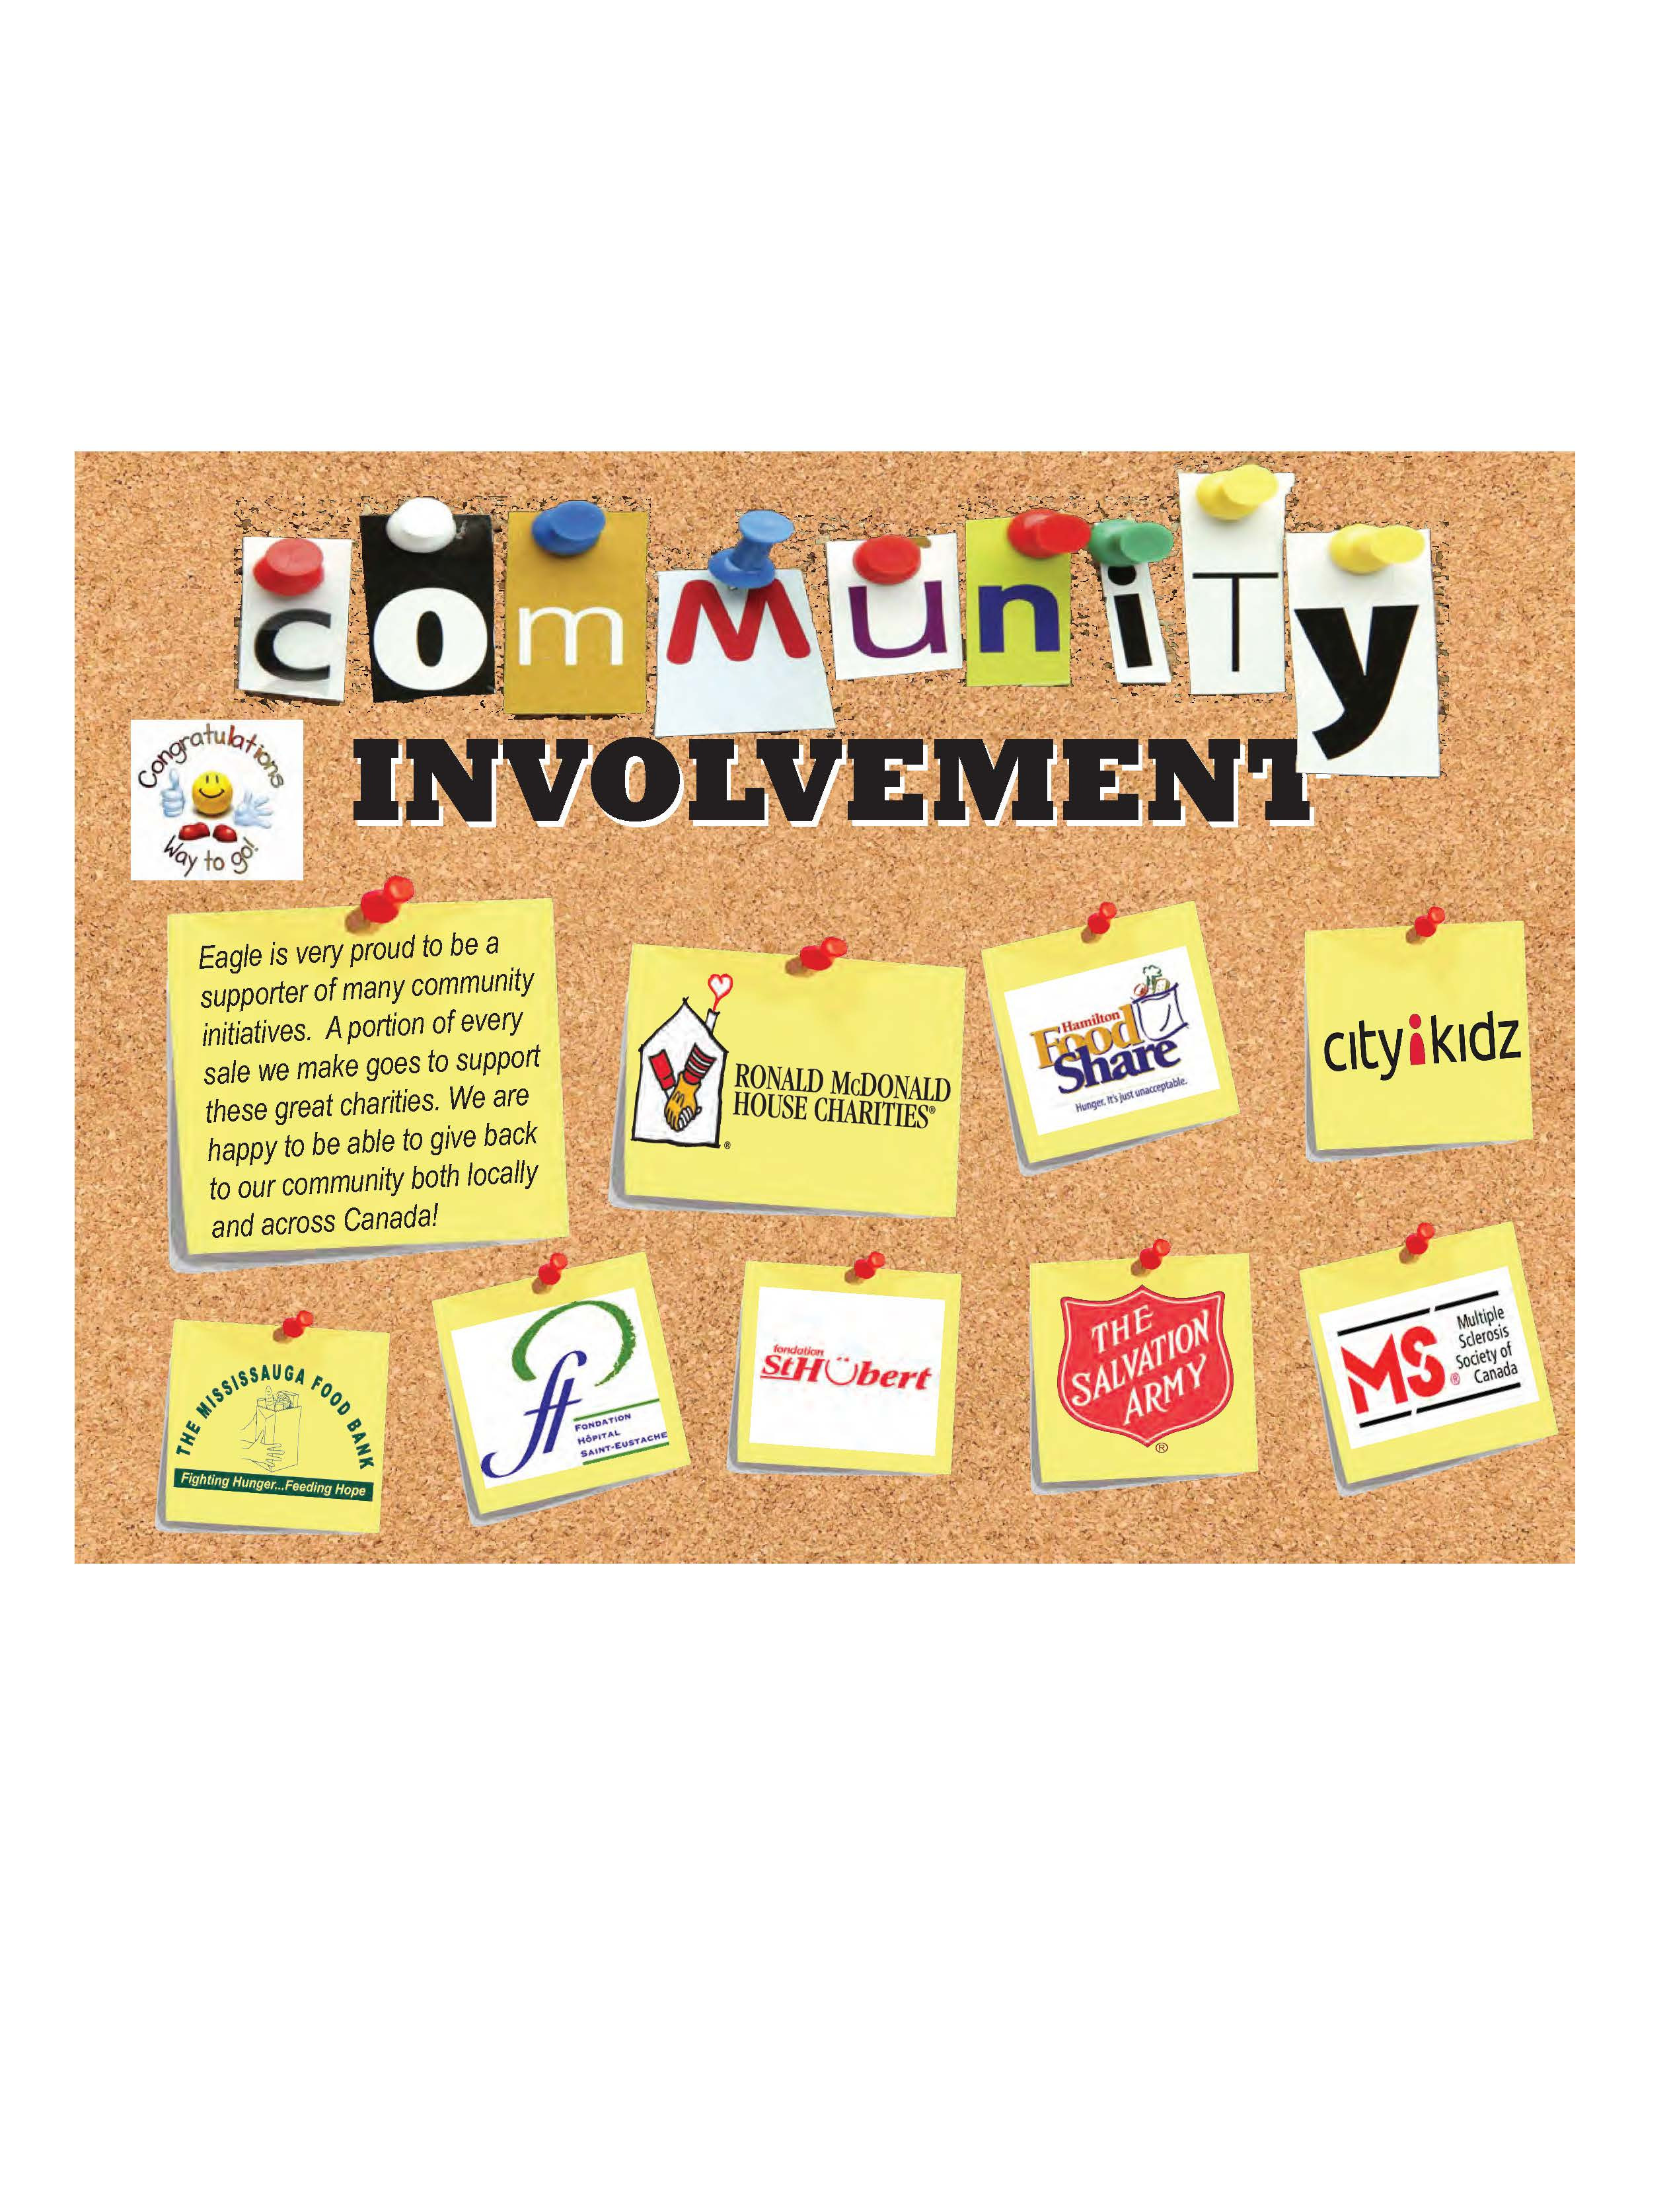 Community Involvement - Eagle Indsutries Corp